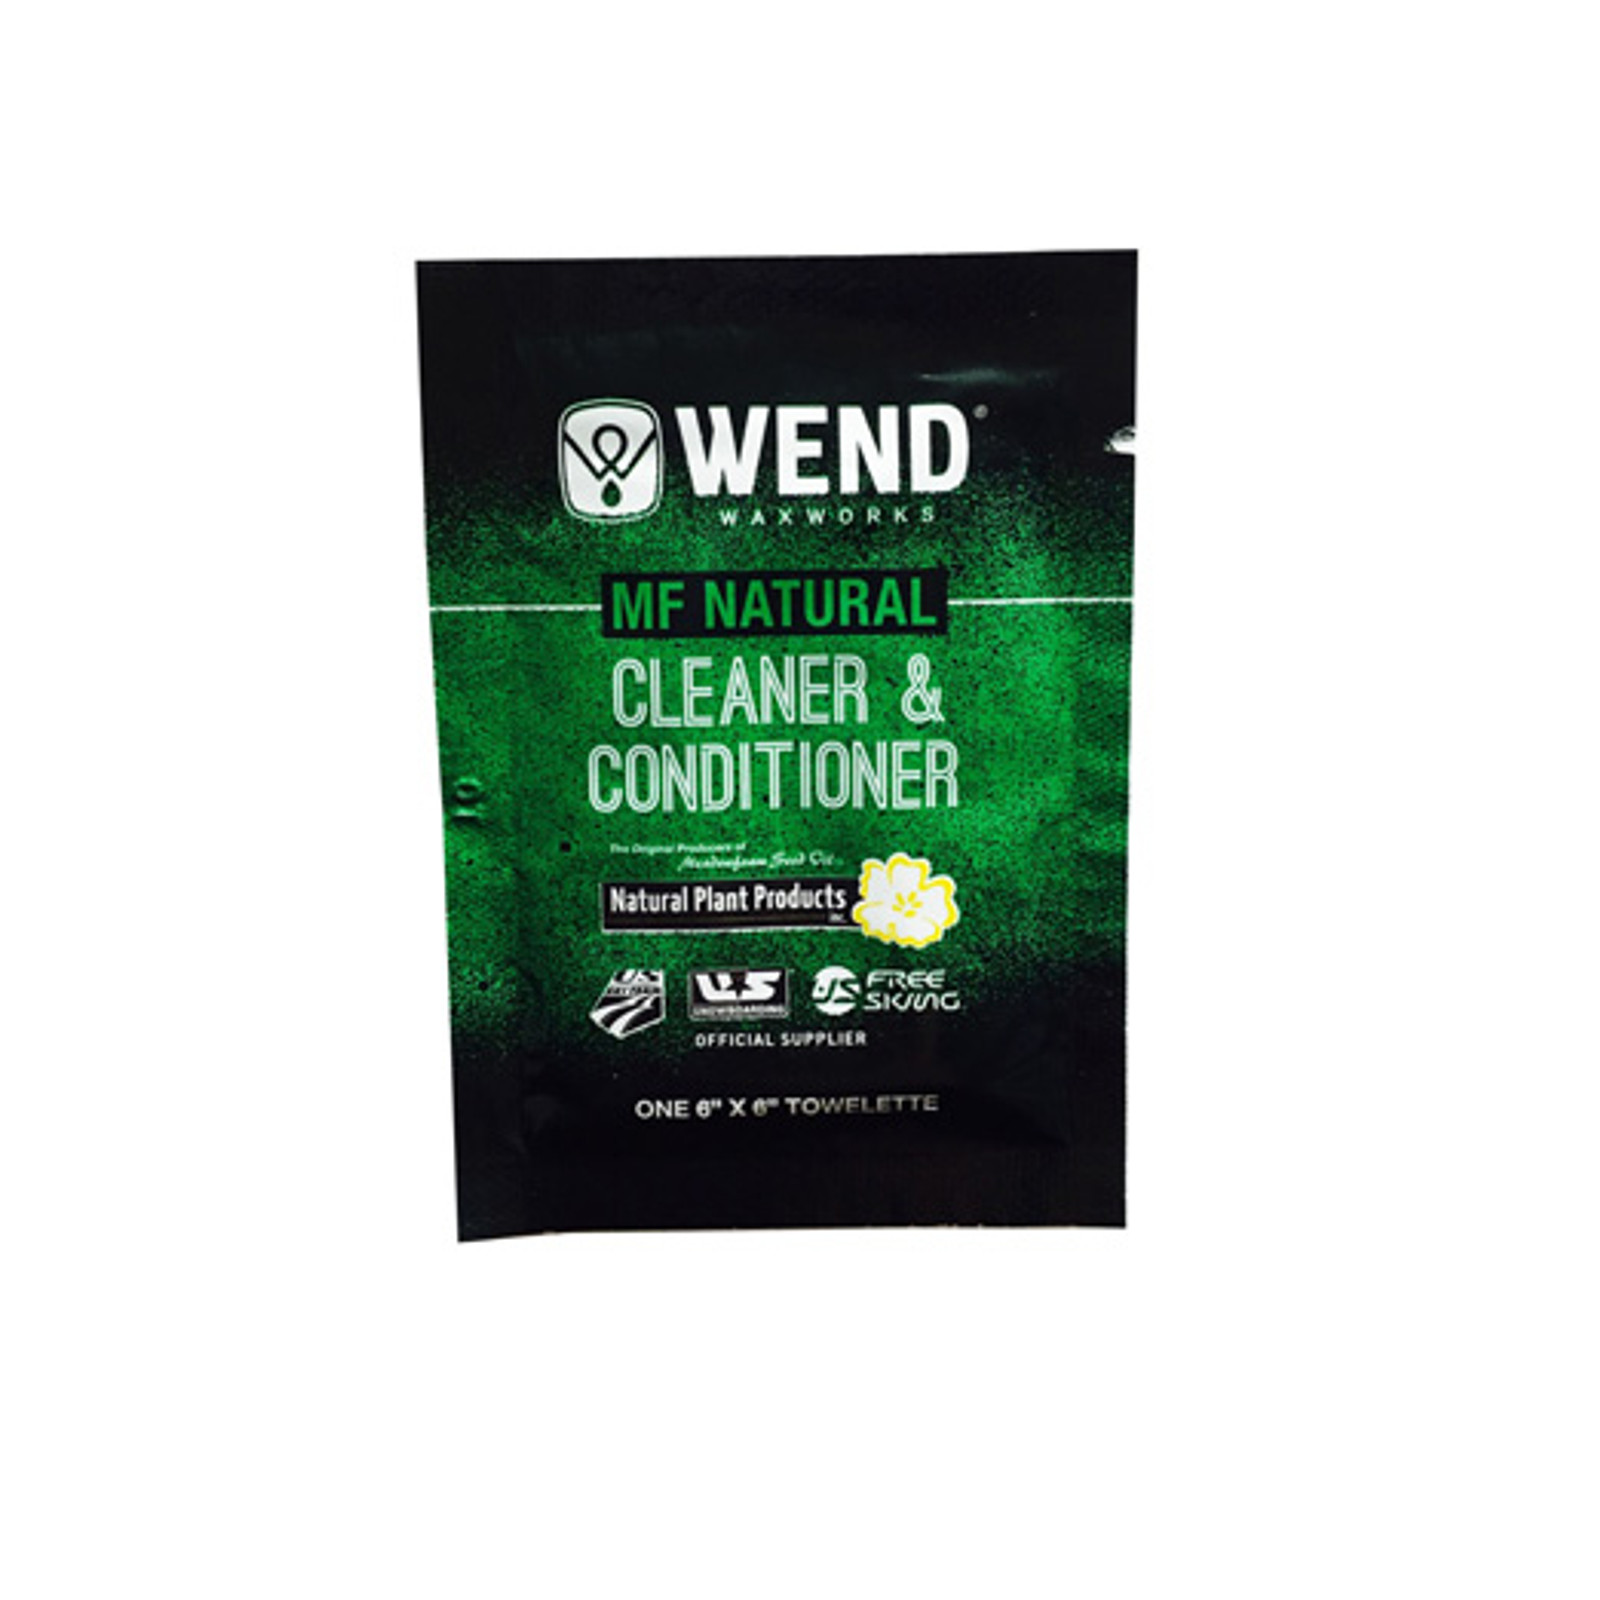 WEND MF NATURAL CLEANER/CONDITIONER